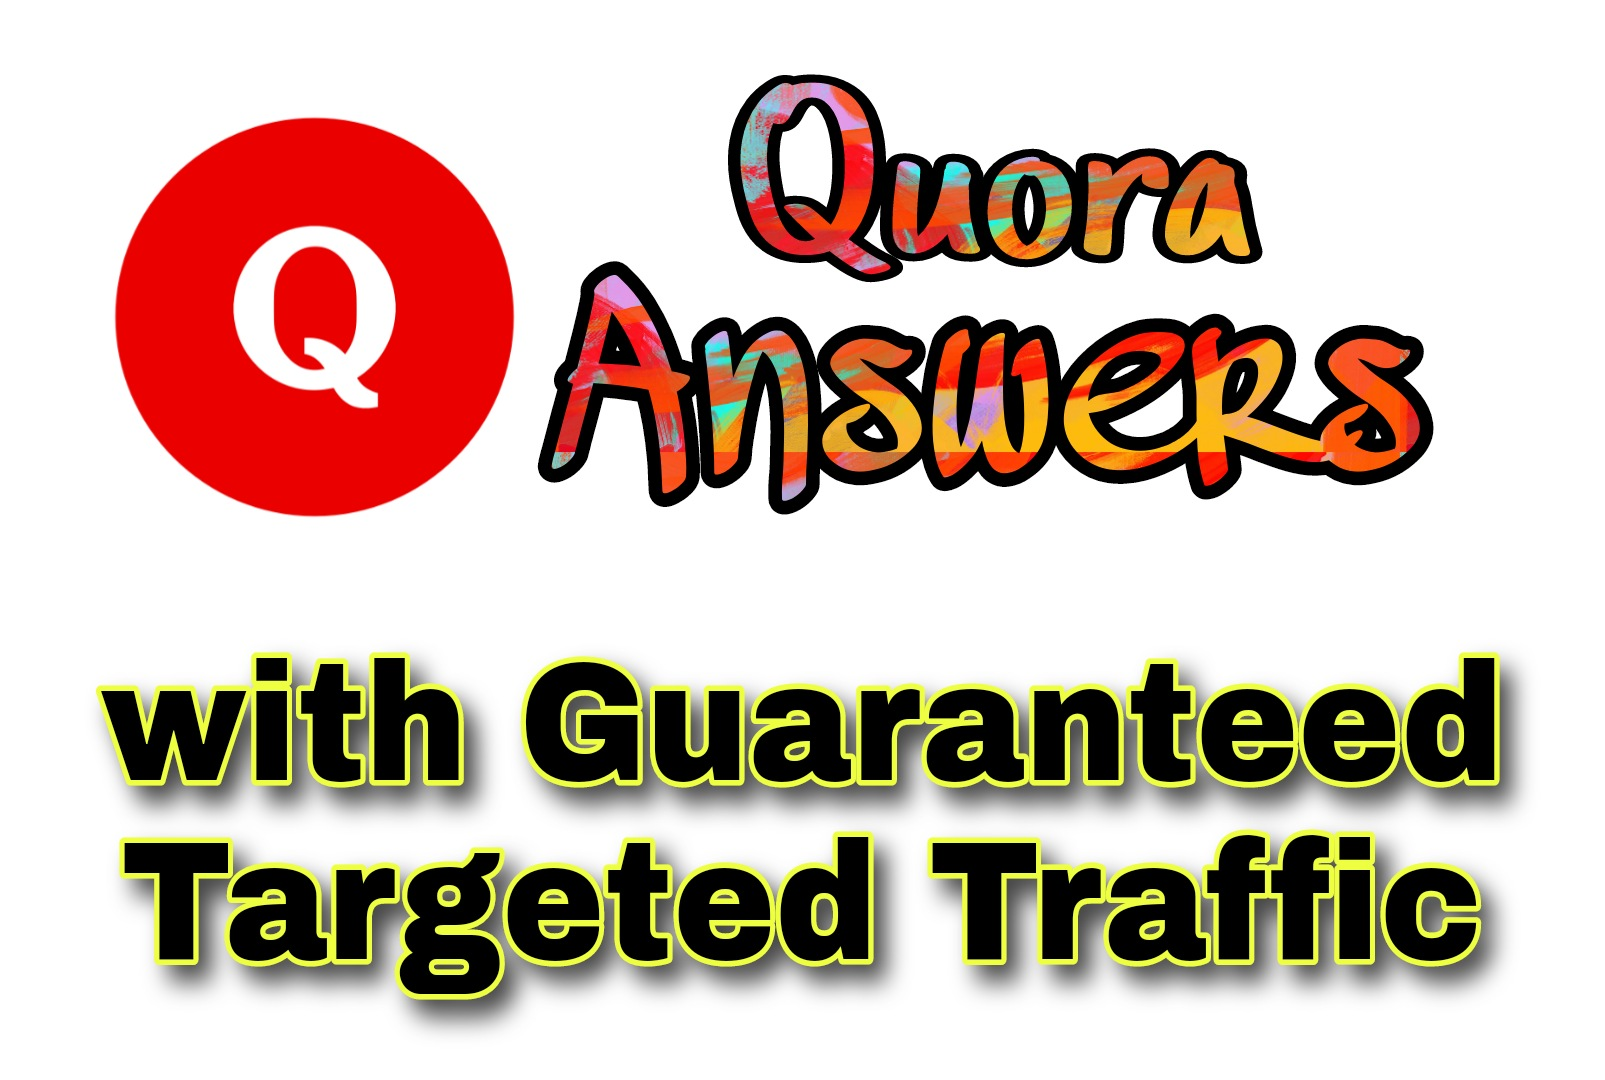 50 Quora Answers with Targeted Traffic